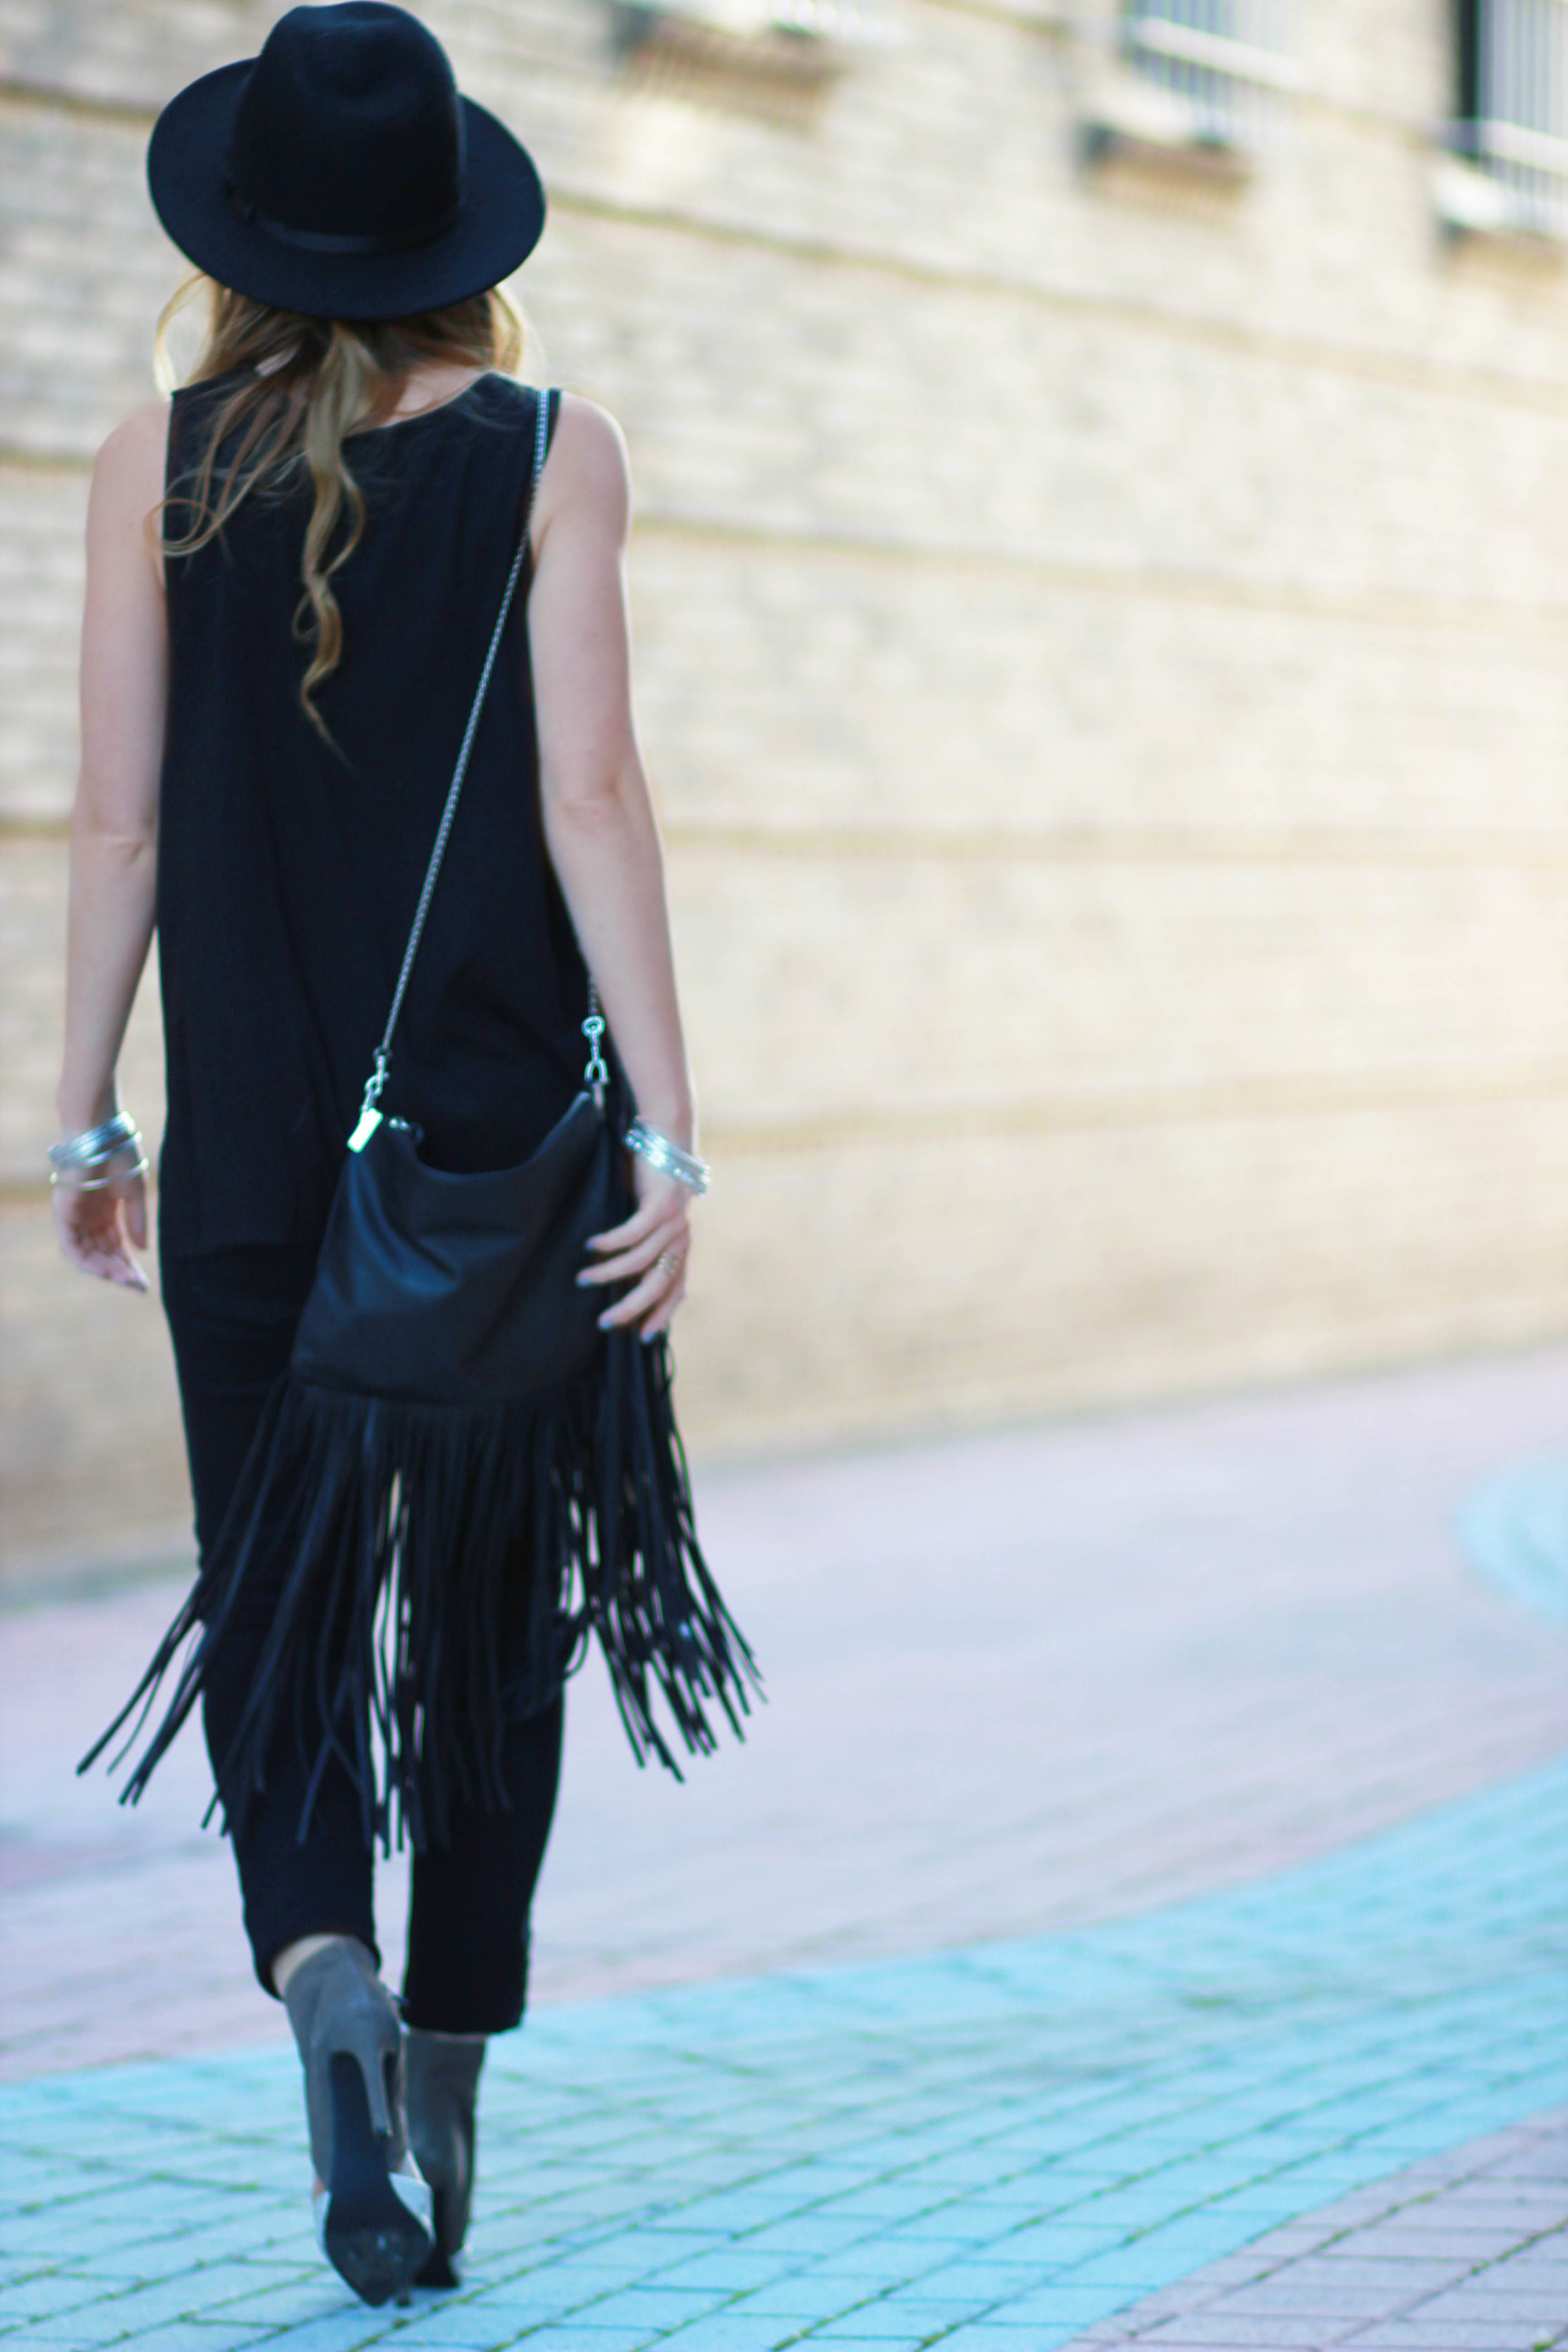 florida, orlando fashion blogger styles qtee graphic tee, black forever 21 jeans and steven madden python heels for a casual all black outfit